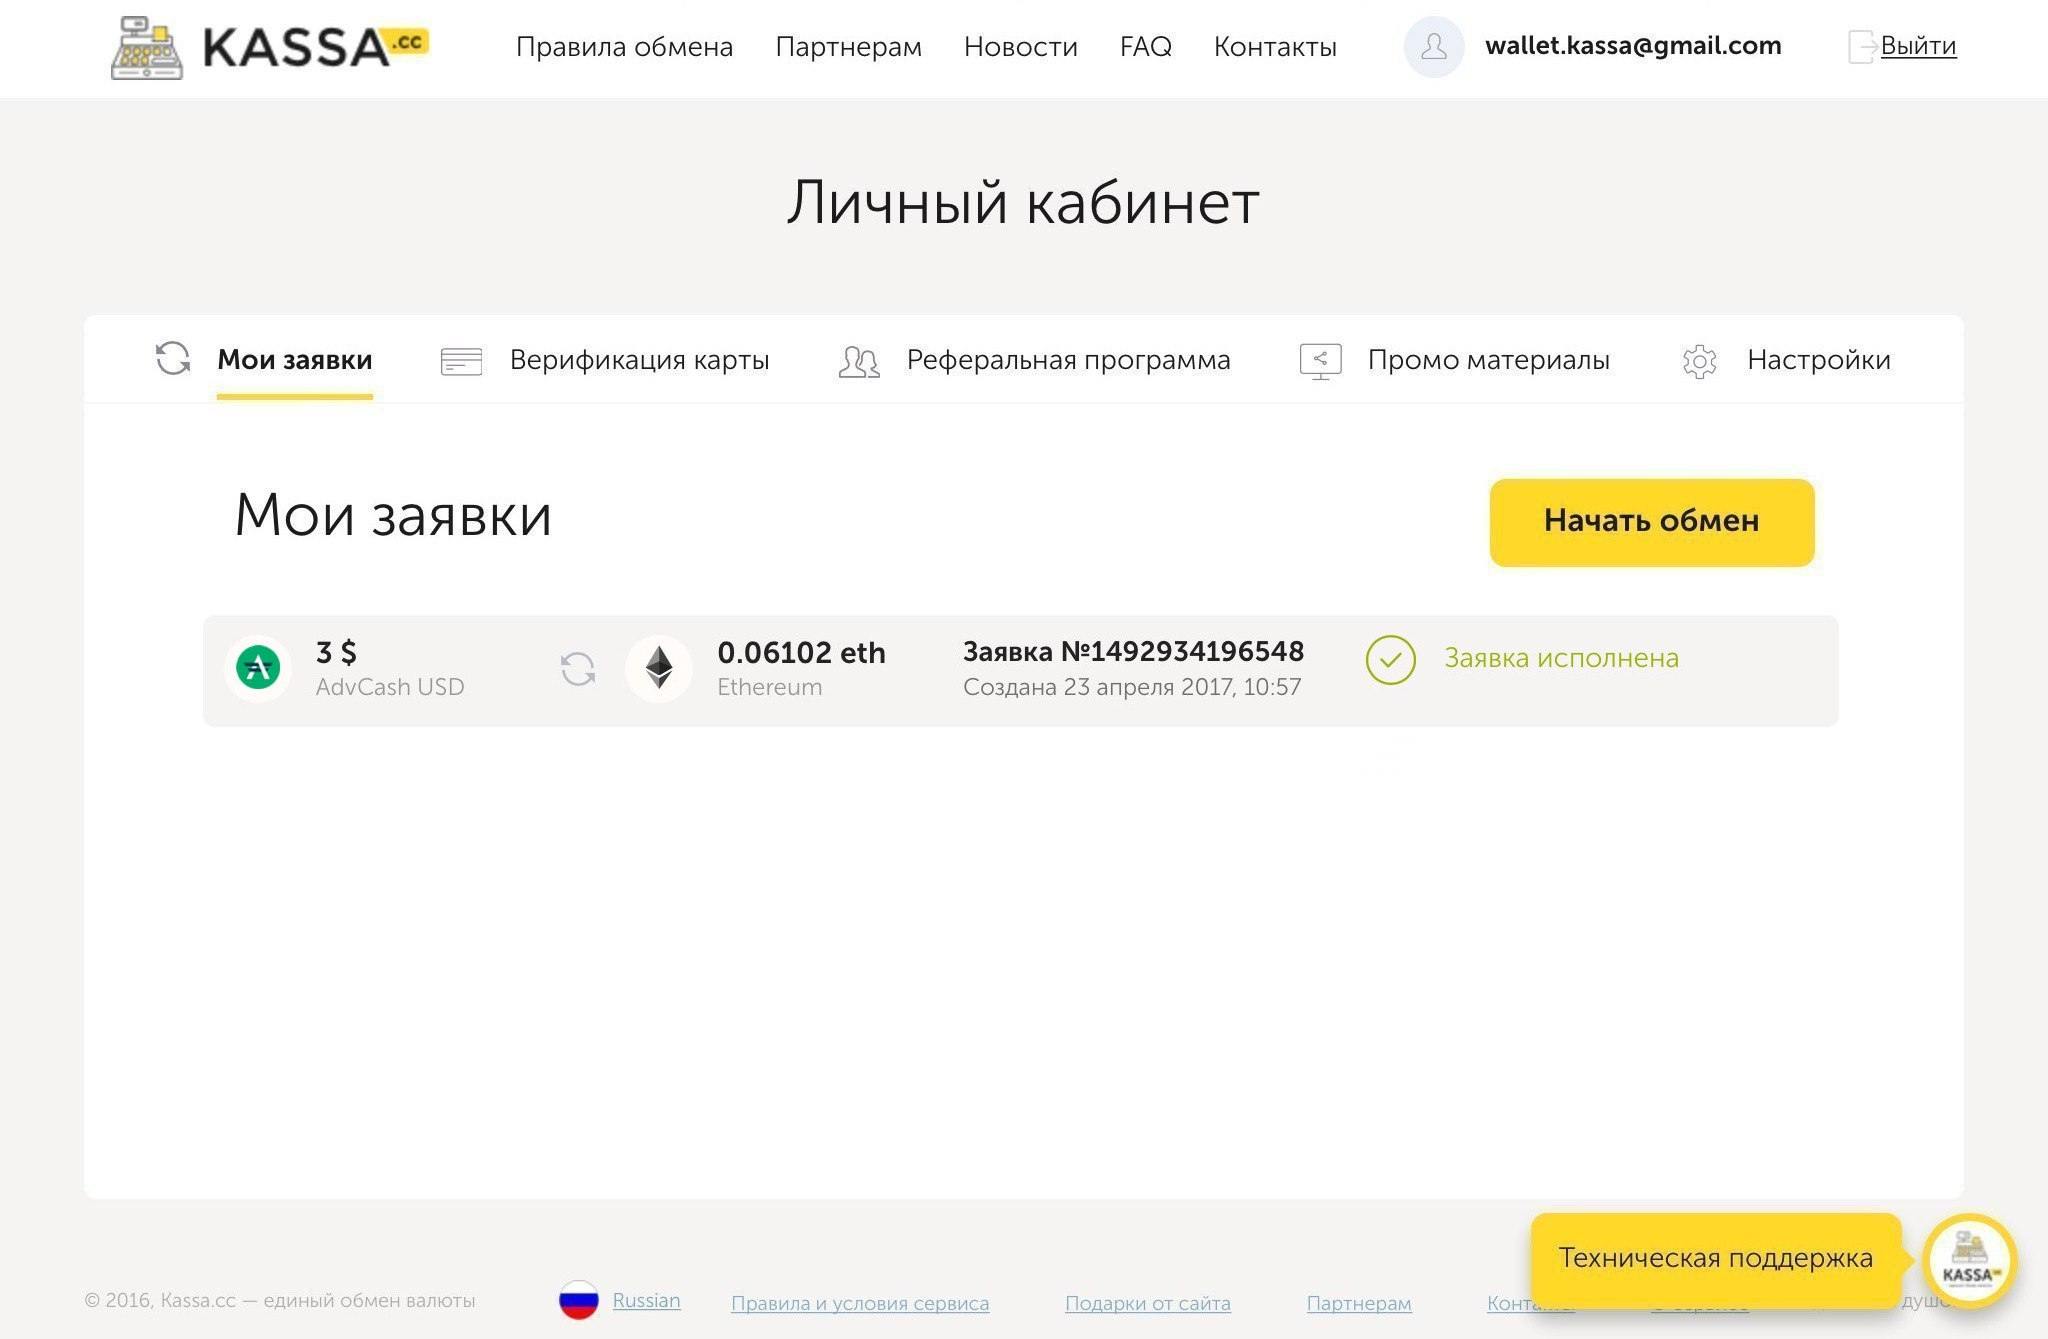 Kassa.cc is a single currency exchange. Exchange AdvCash USD for Ethereum